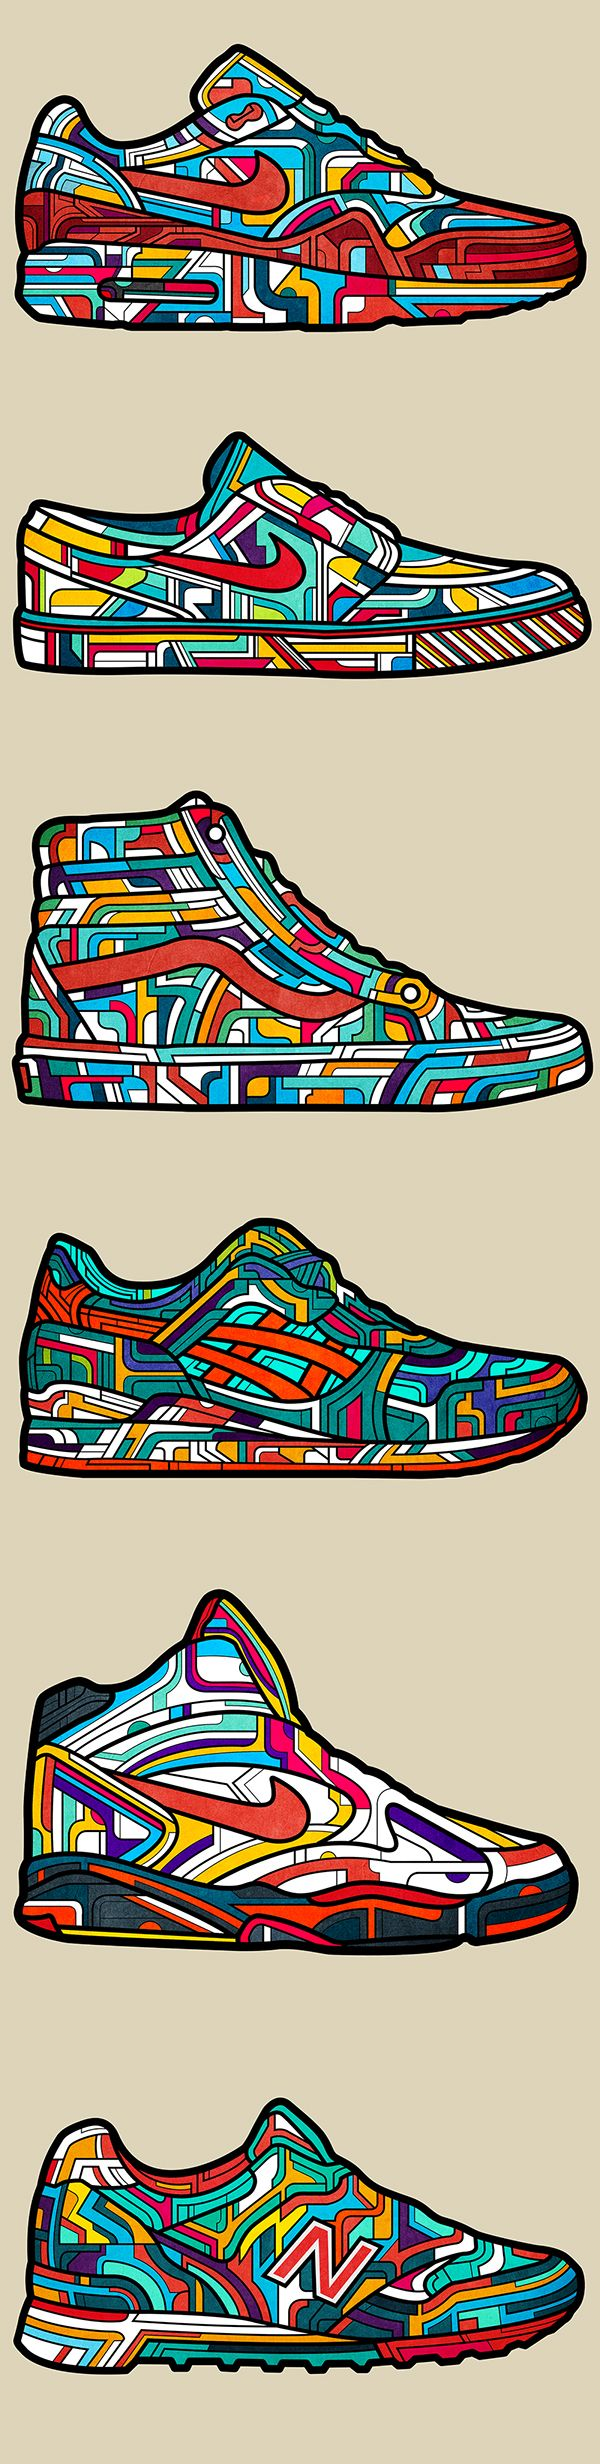 Classic Sneakers Collection on Illustration Served